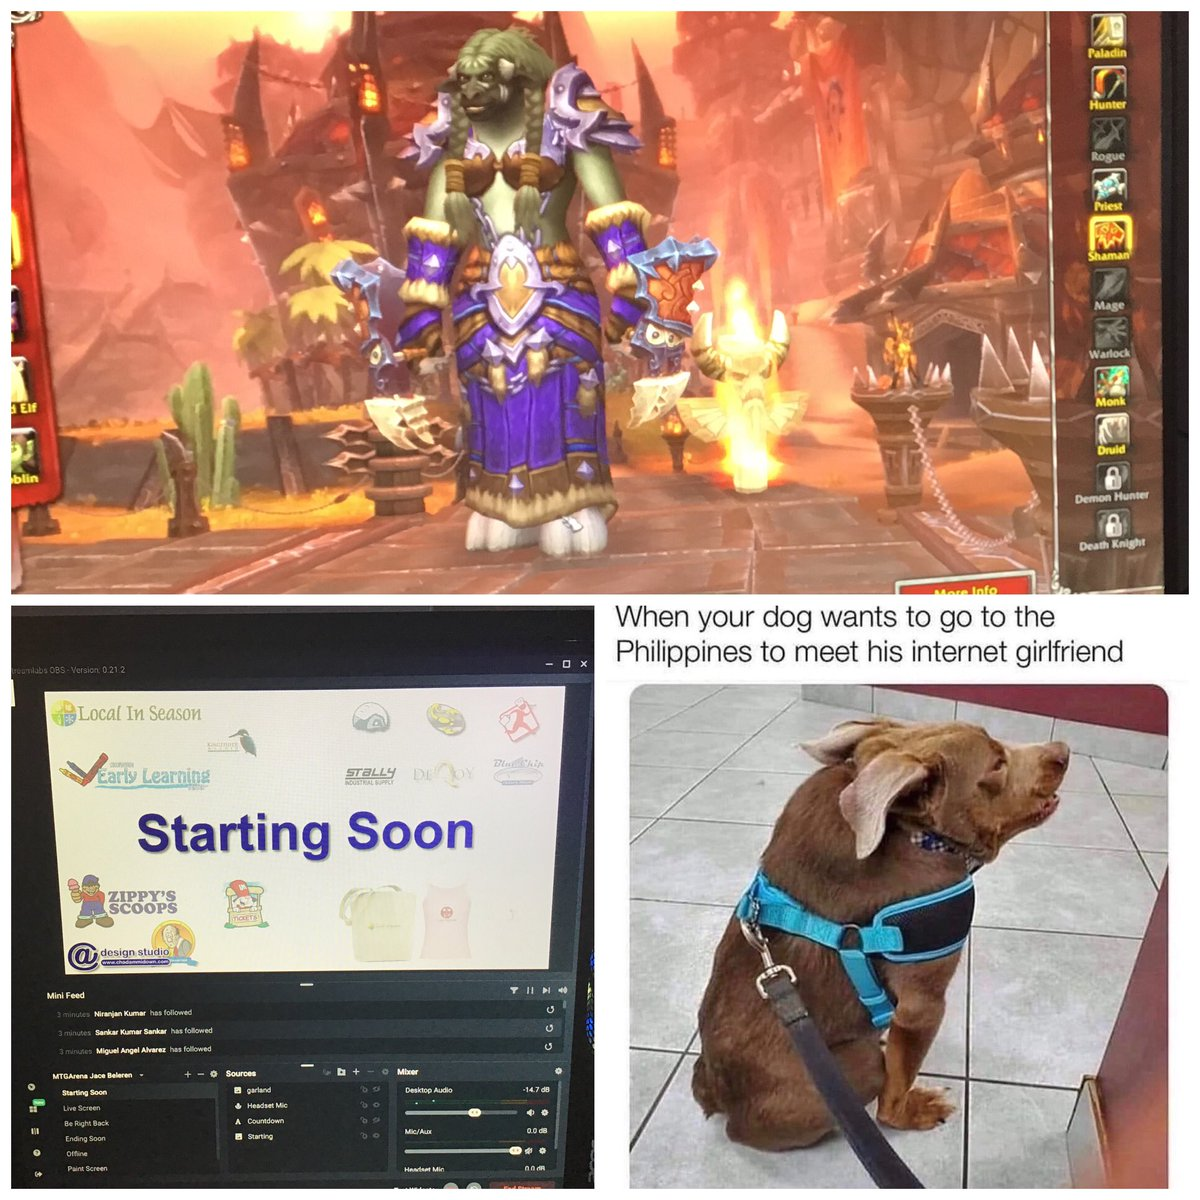 Going live on Twitch! Playing World of Warcraft - (http://twitch.tv/CAdesignstudio ) Join me? #worldofwarcraft #warcraft #twitch #twitchgaming #twitchstreamer #twitchaffiliate #live #livestream  #video #supportsmallstreamers  http://Twitch.tv/CAdesignstudio pic.twitter.com/FXC4isrhX7